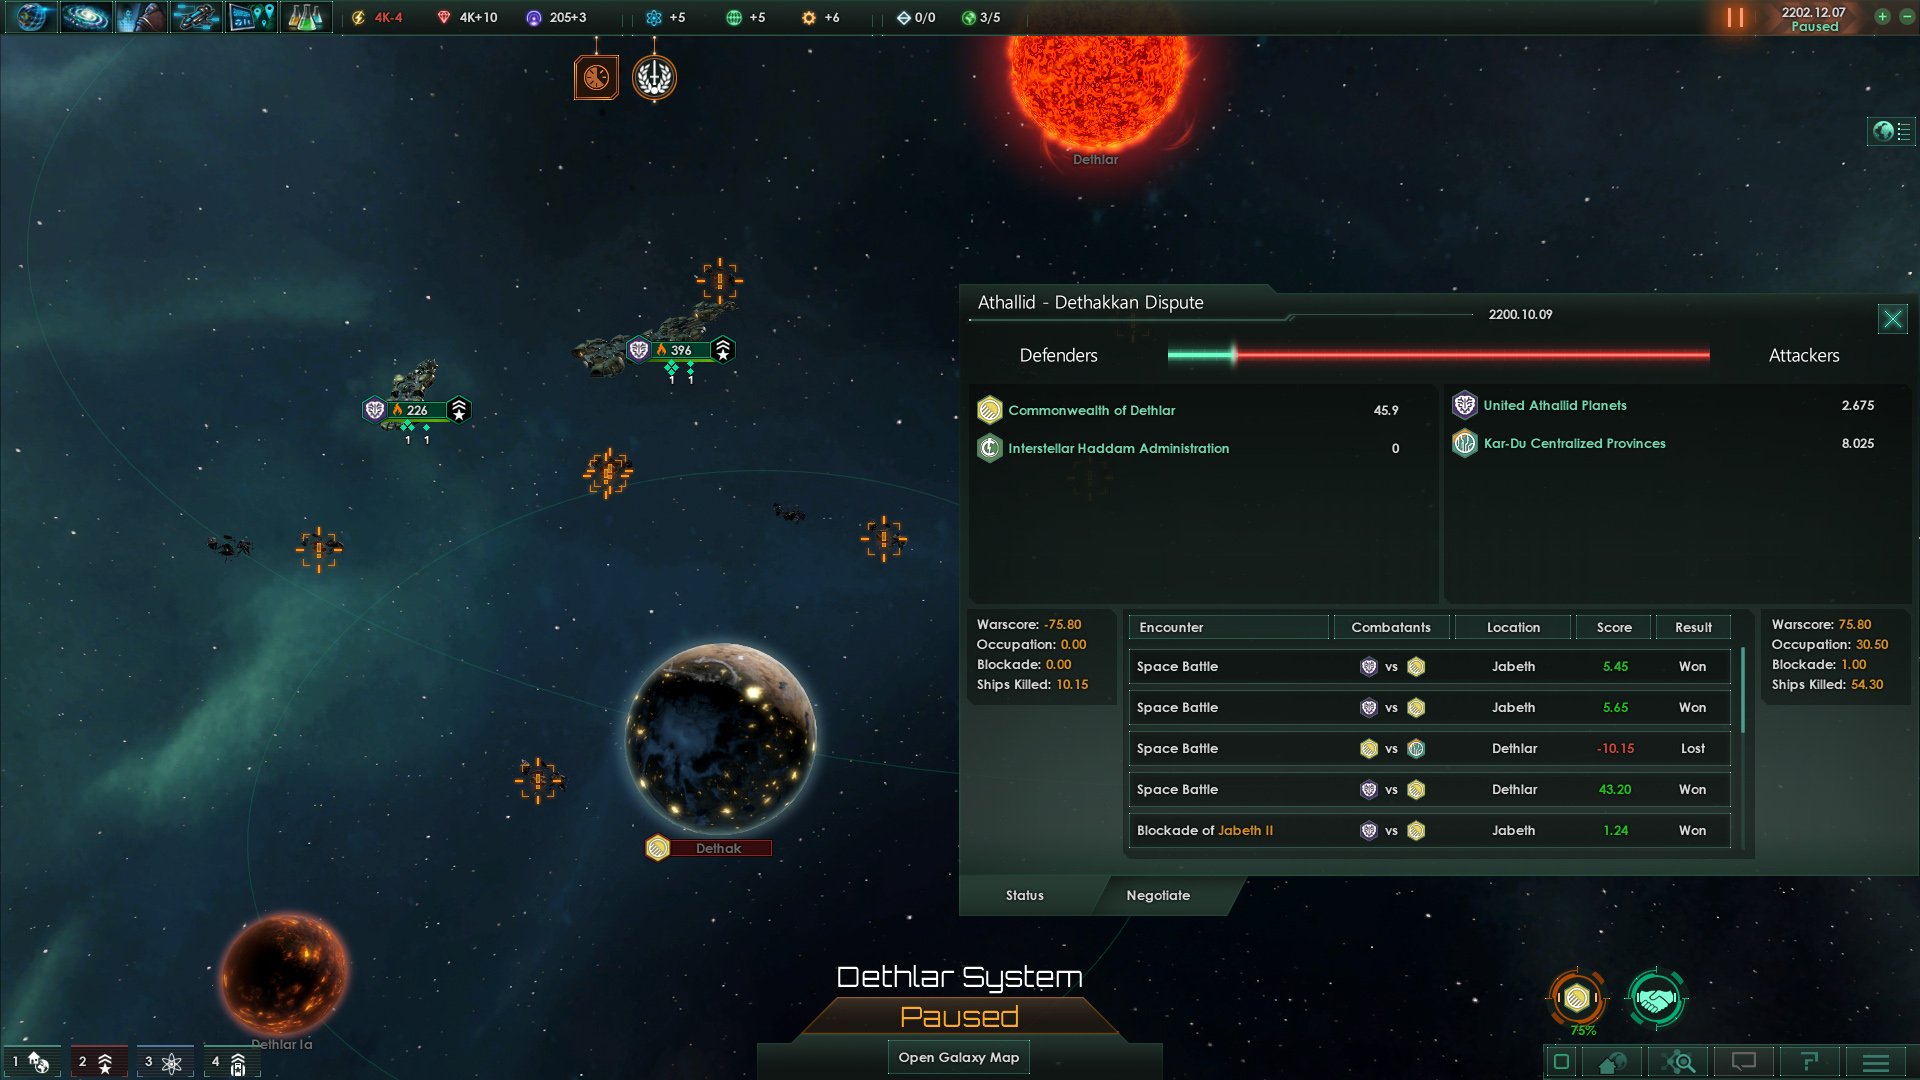 stellaris_dev_diary_20_01_20160208_war_overview.jpg